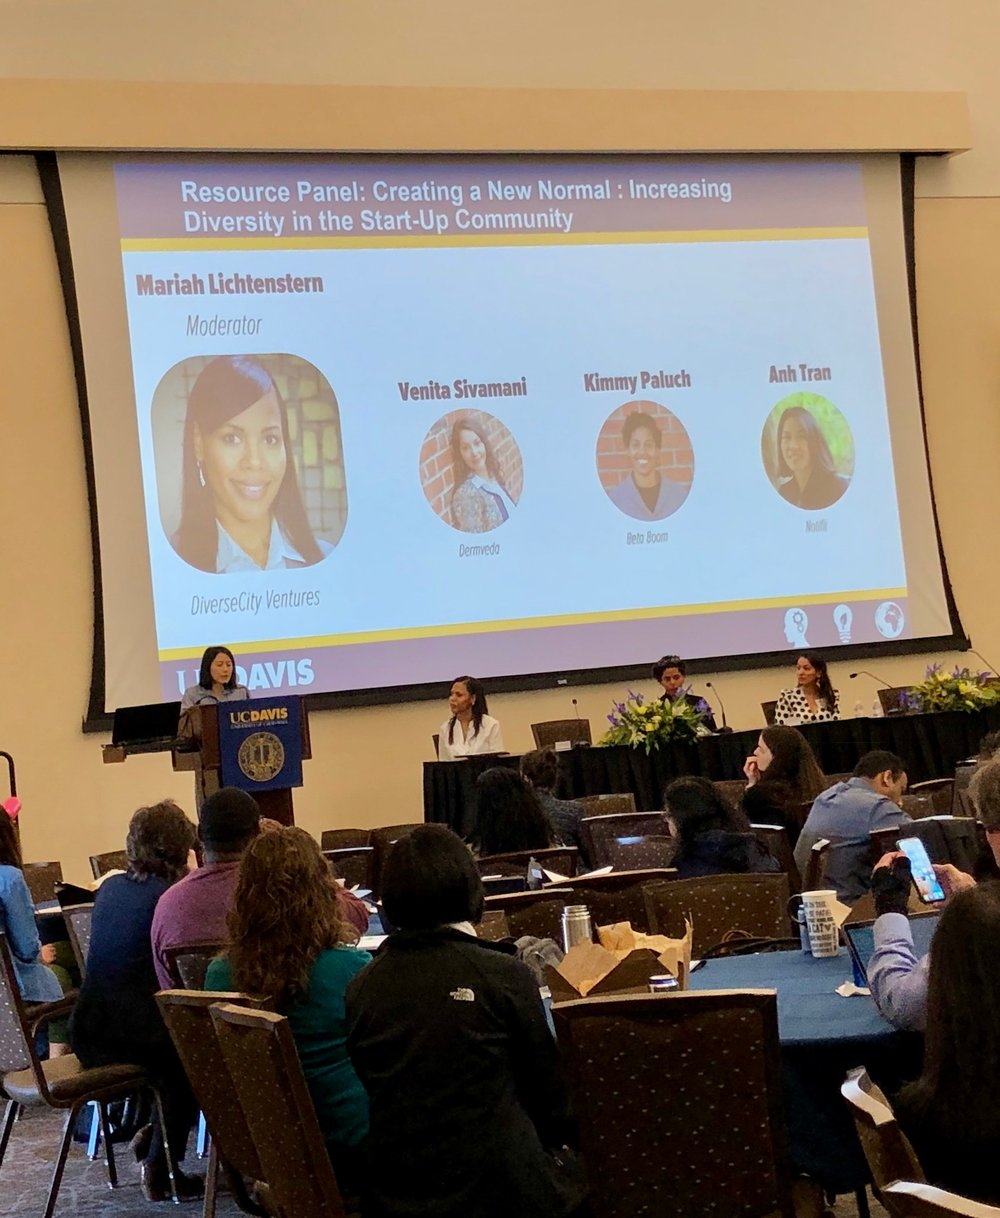 Anh was joined by  Kimmy Paluch of Beta Boom  and  Venita Sivamani of Dermveda  in the panel, which was moderated by  Mariah Lichtenstern of DiverseCity Ventures .